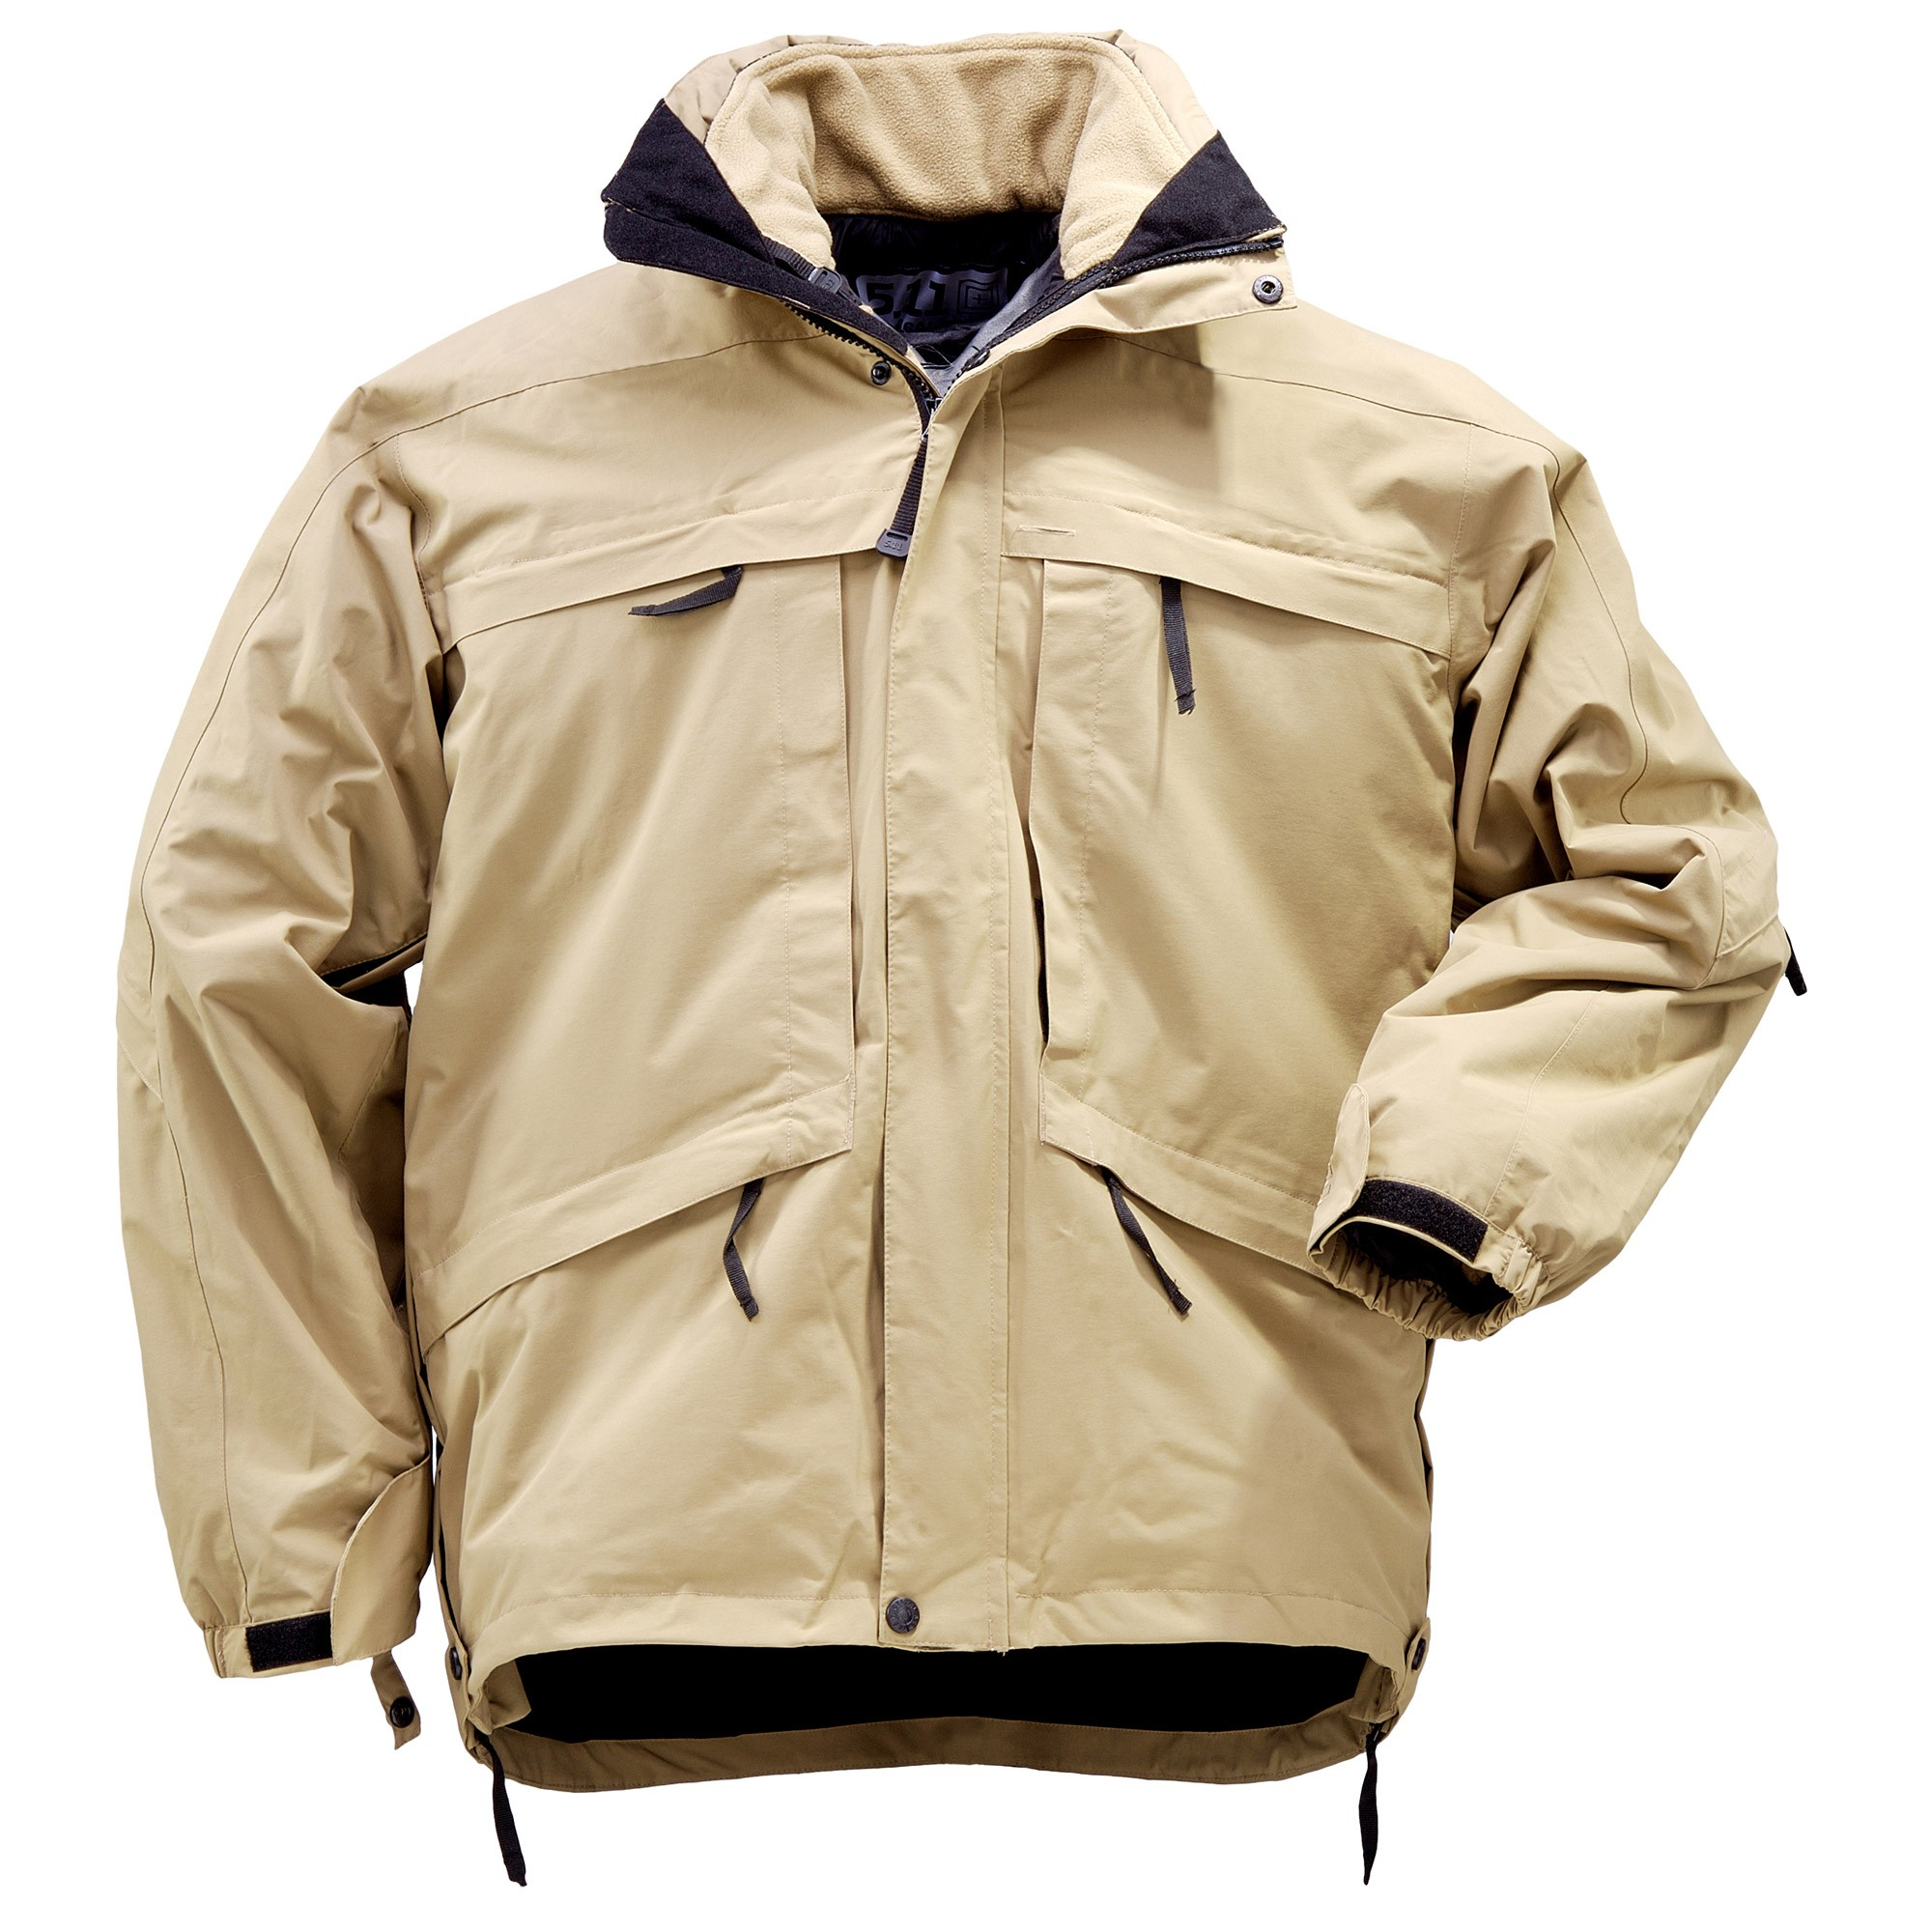 Куртка 5.11 Tactical Aggressor Parka